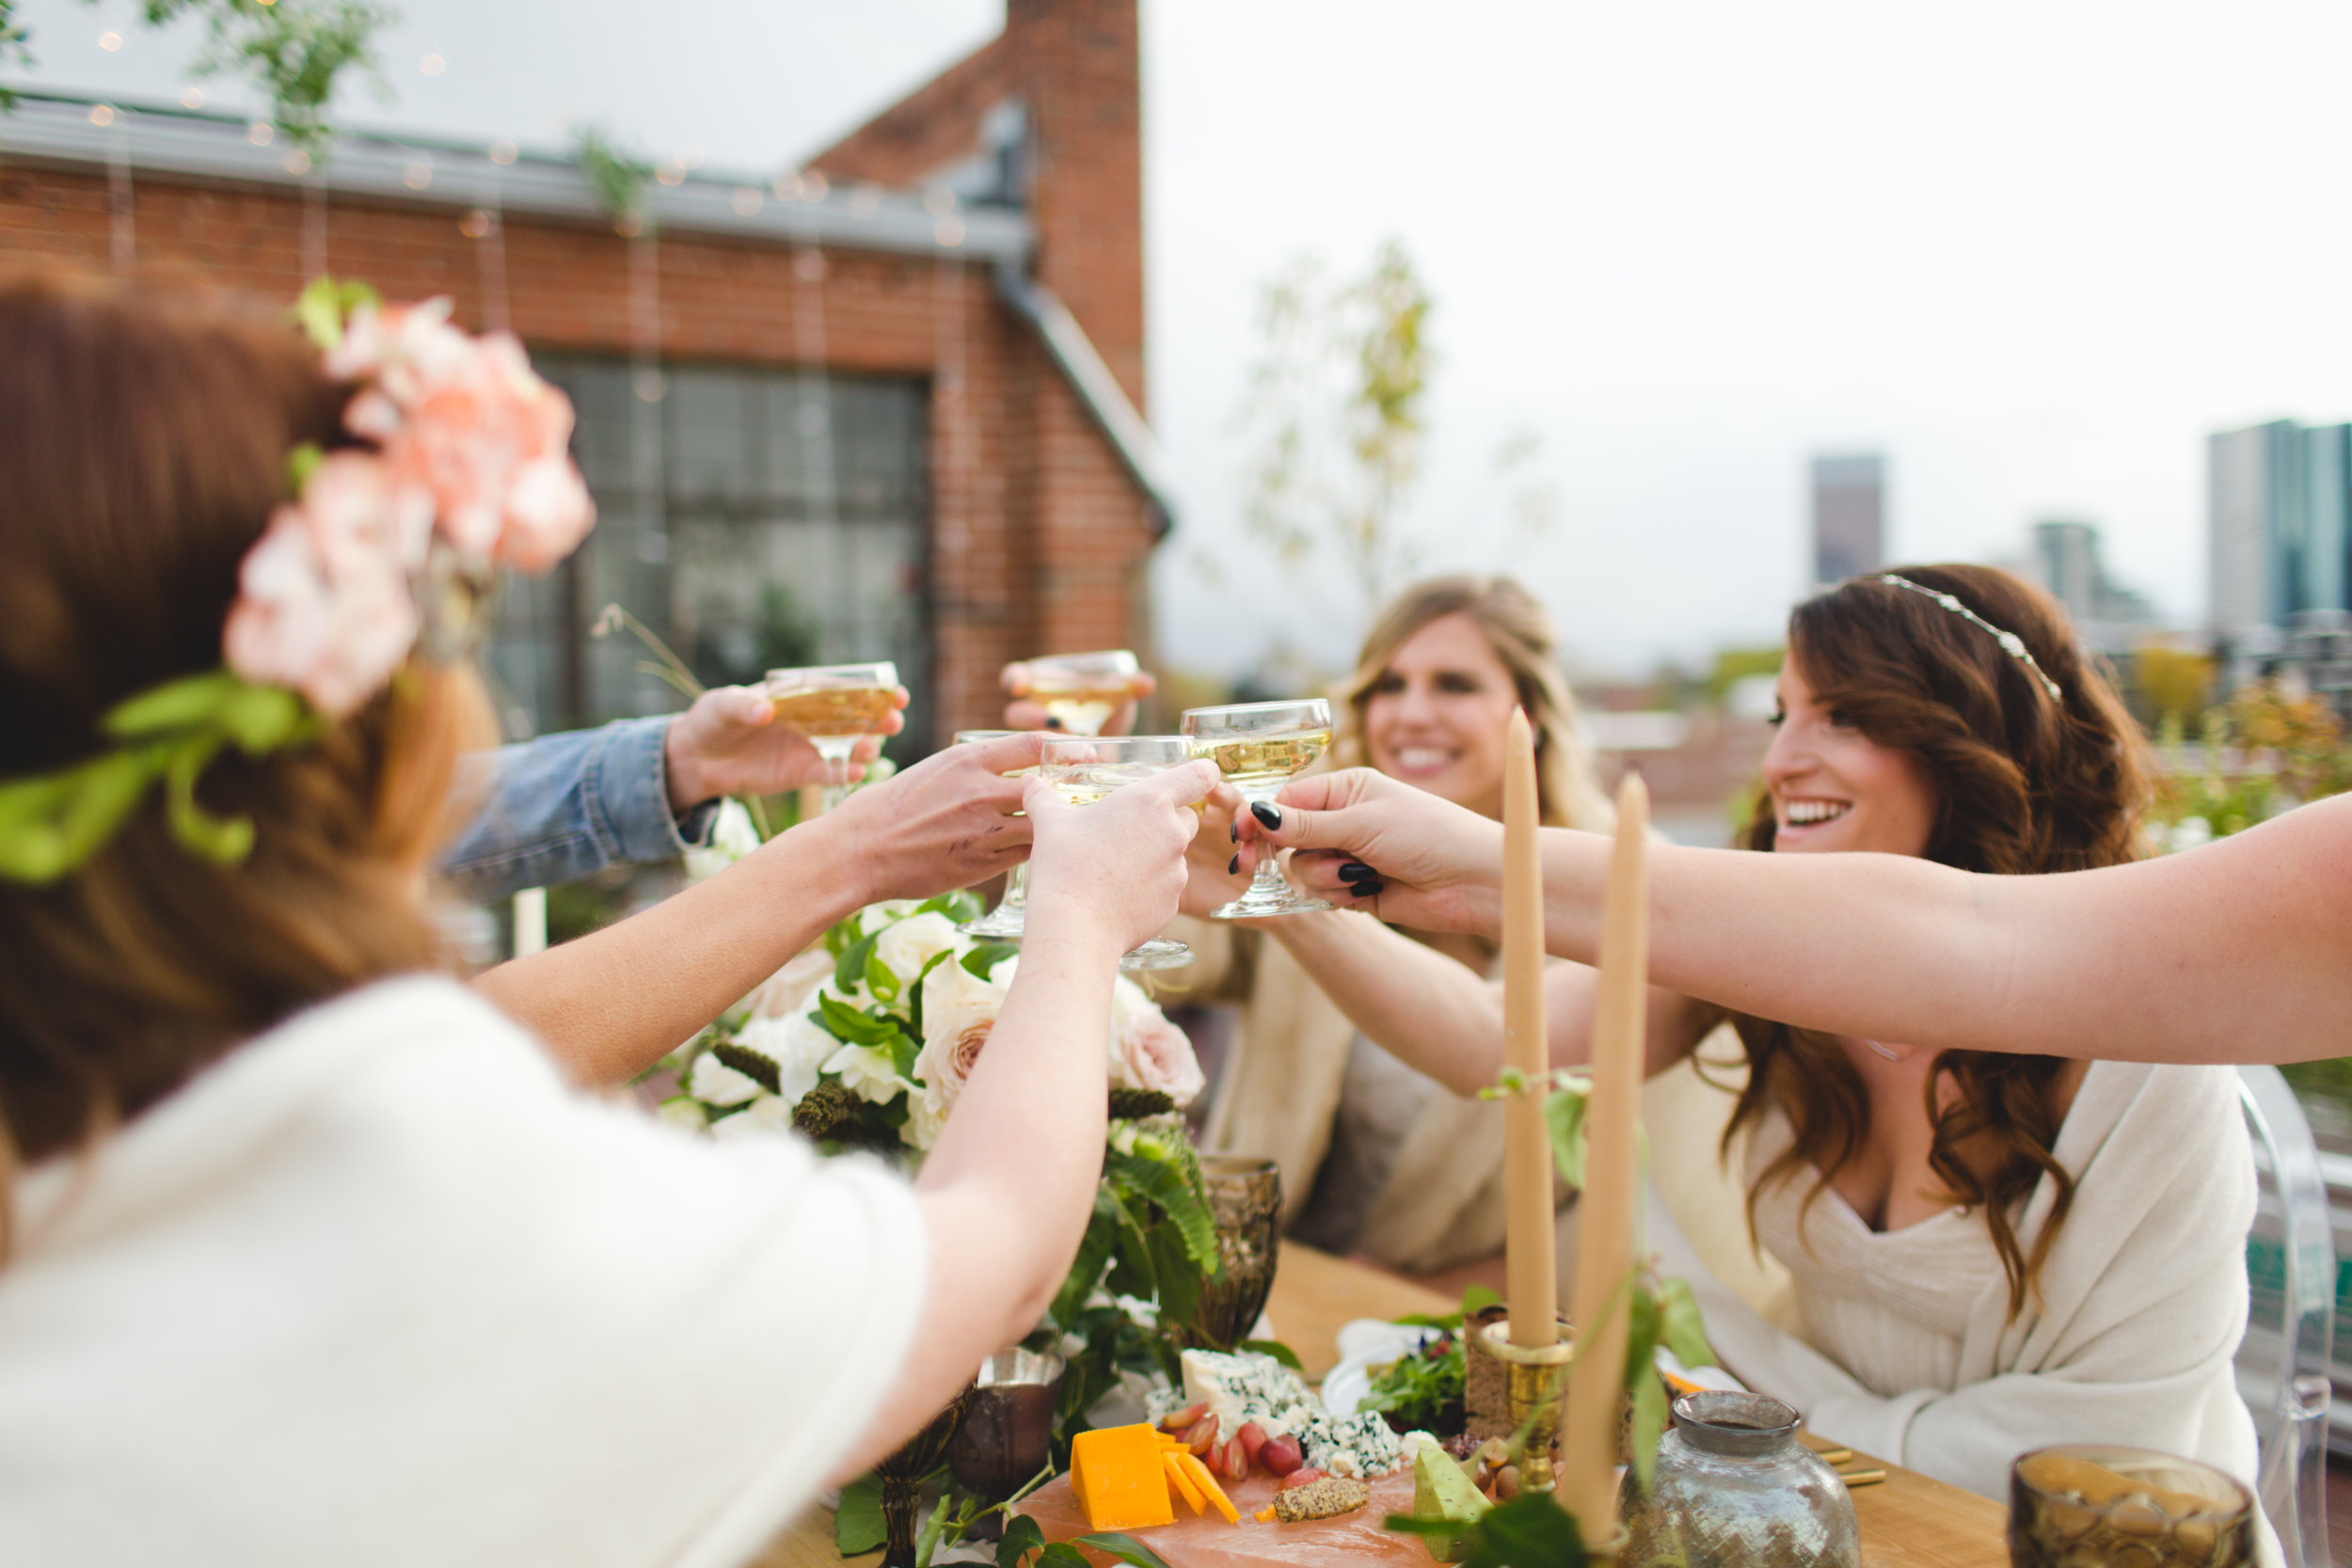 denver-rooftop-dinner-party-planner28.jpg